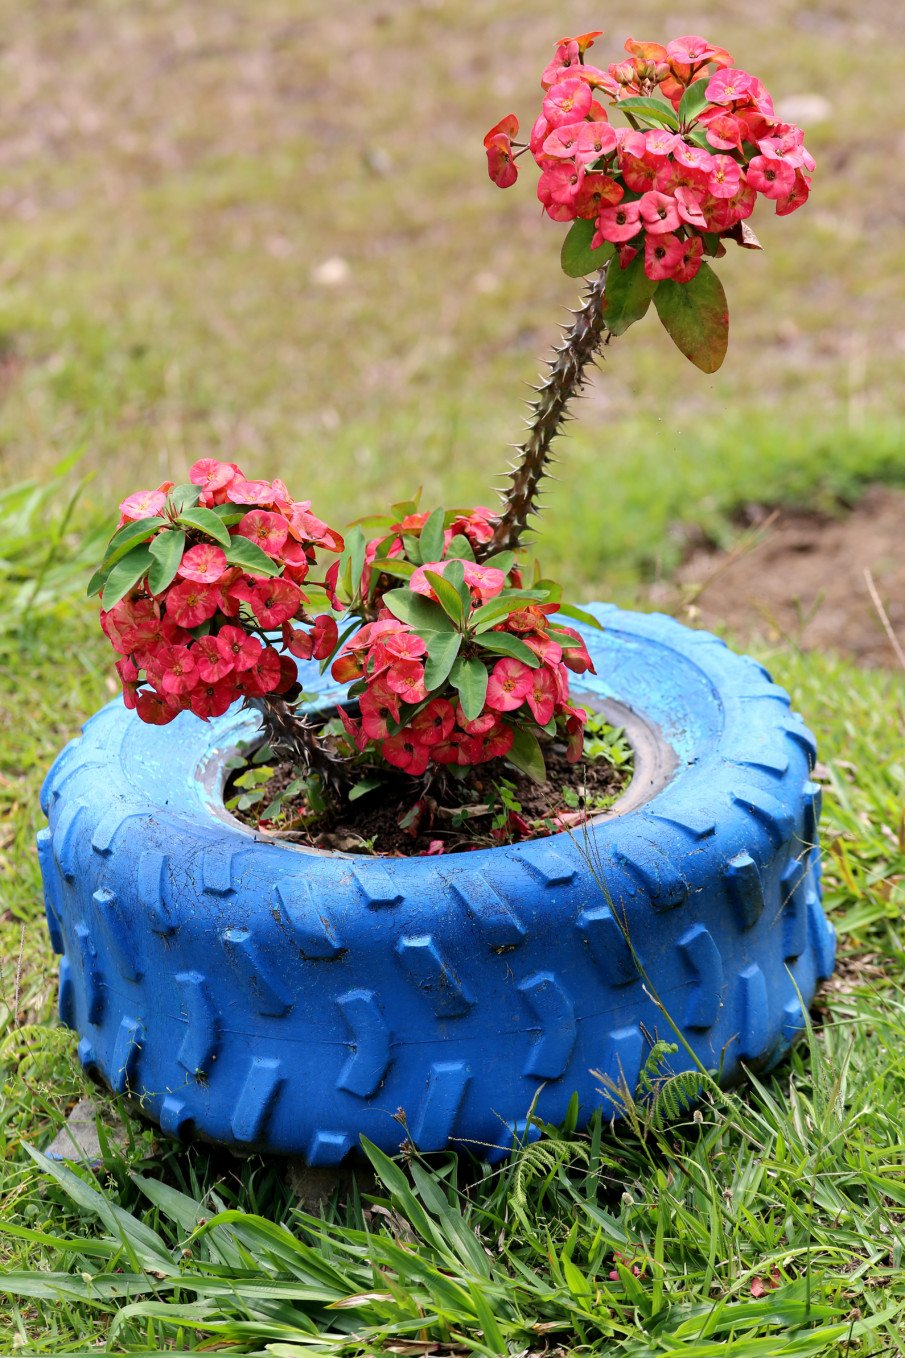 small tractor tire with a thorny flower plant